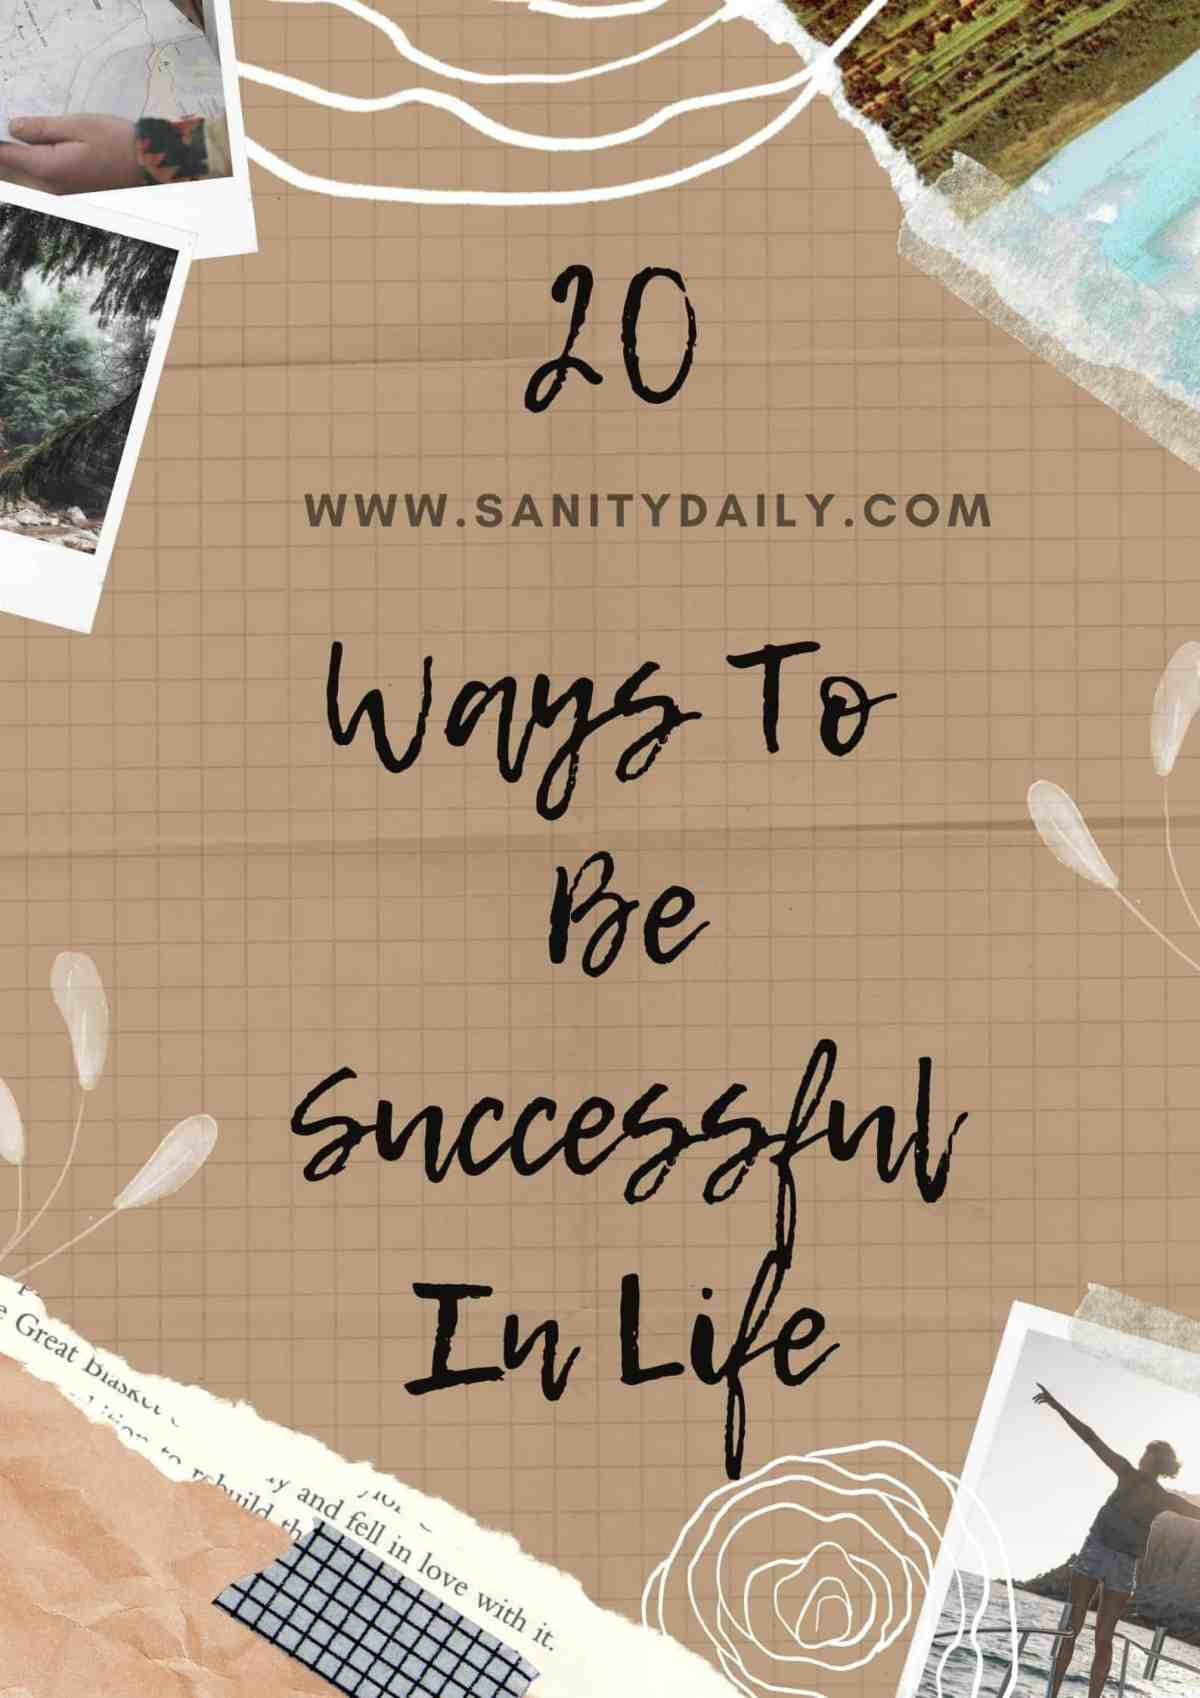 How to become successful in life?